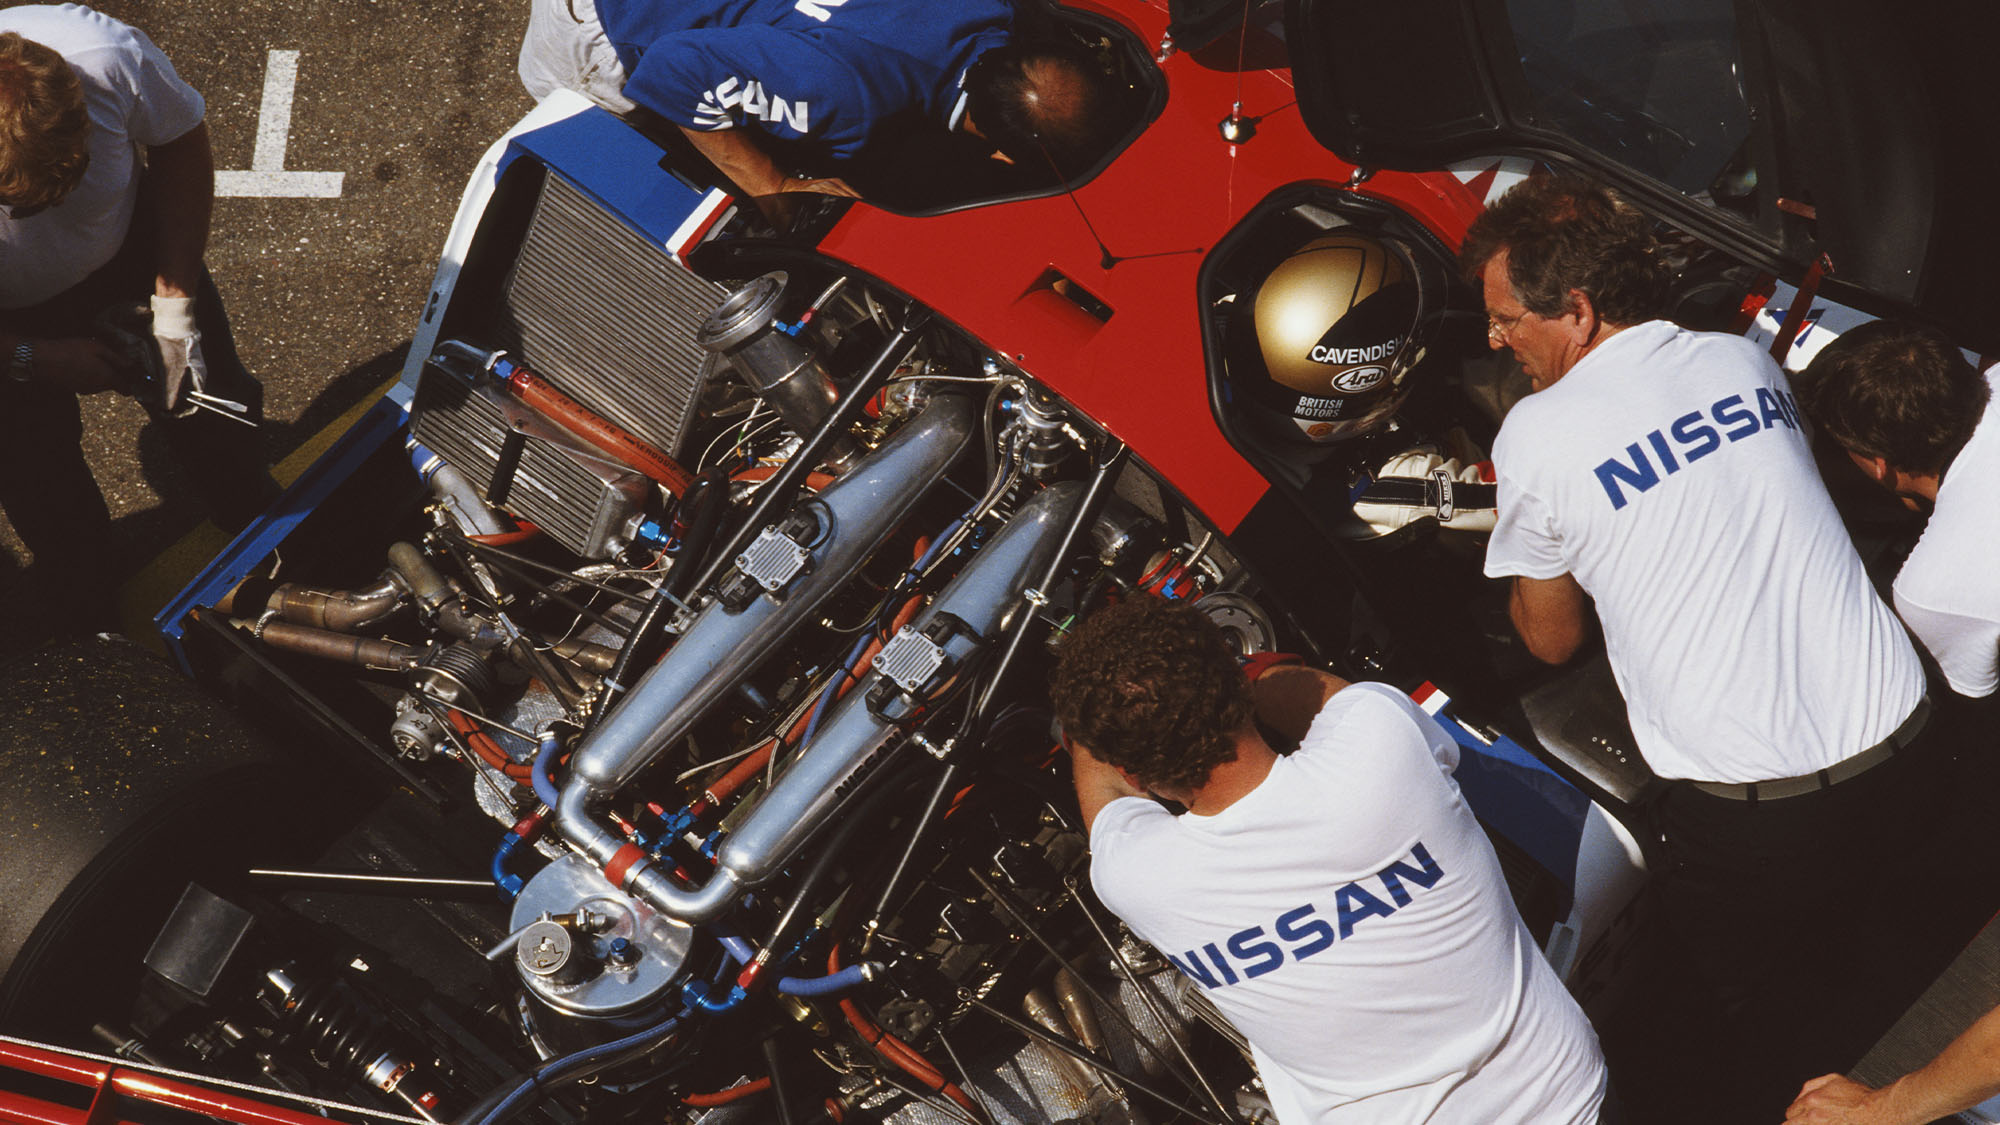 Team Manager Keith Greene talks to Julian Bailey (in car) of Great Britain, driver of the #23 Nissan Motorsports International Nissan R89C during the FIA World Sportscar Prototype Championship Coupe de Dijon on 21st May 1989 at the Circuit Dijon Prenois in Dijon, France.(Photo by Pascal Rondeau/Getty Images)